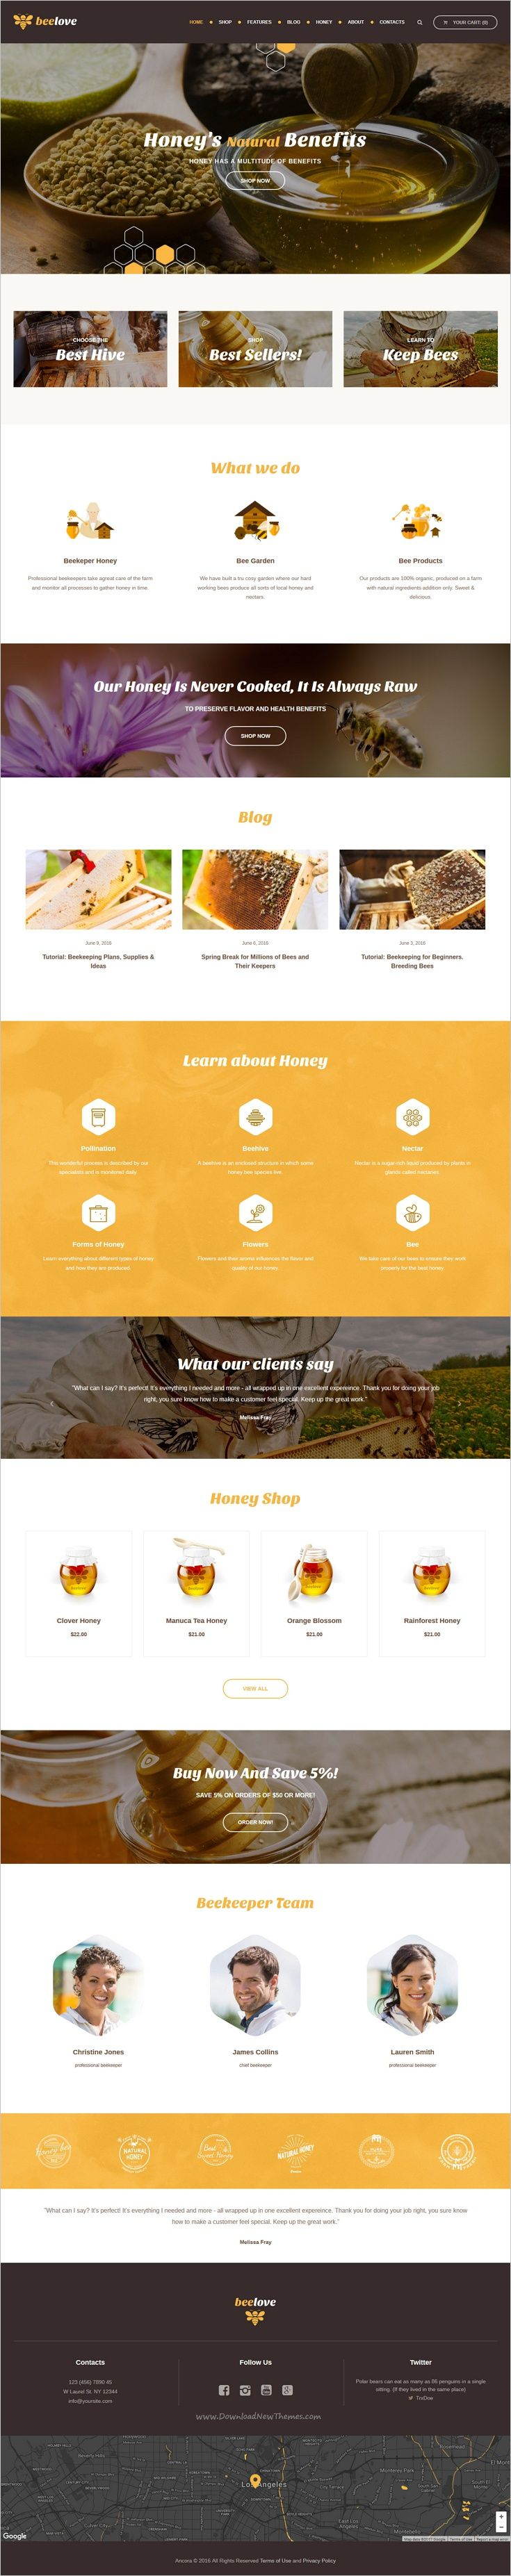 Beelove is a modern and functional design responsive #WordPress theme for #Honey Production Company and #Beekeeping websites download now➩ https://themeforest.net/item/beelove-honey-production-and-online-shop-wordpress-theme/17026538?ref=Datasata